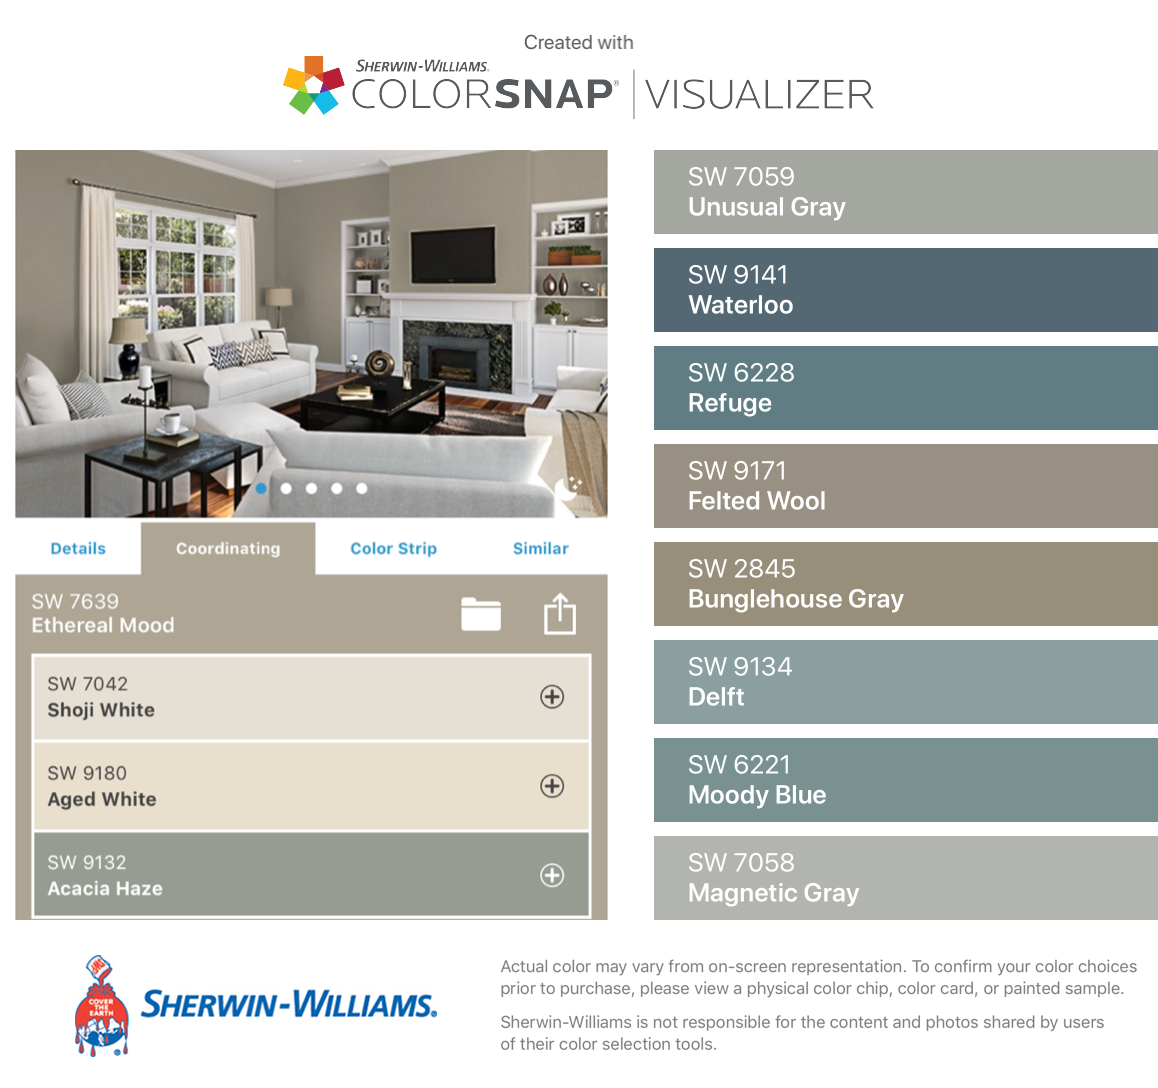 I Found These Colors With Colorsnap Visualizer For Iphone By Sherwin Williams Unusual Gray Sw 7059 Wate Coordinating Paint Colors Shoji White House Colors